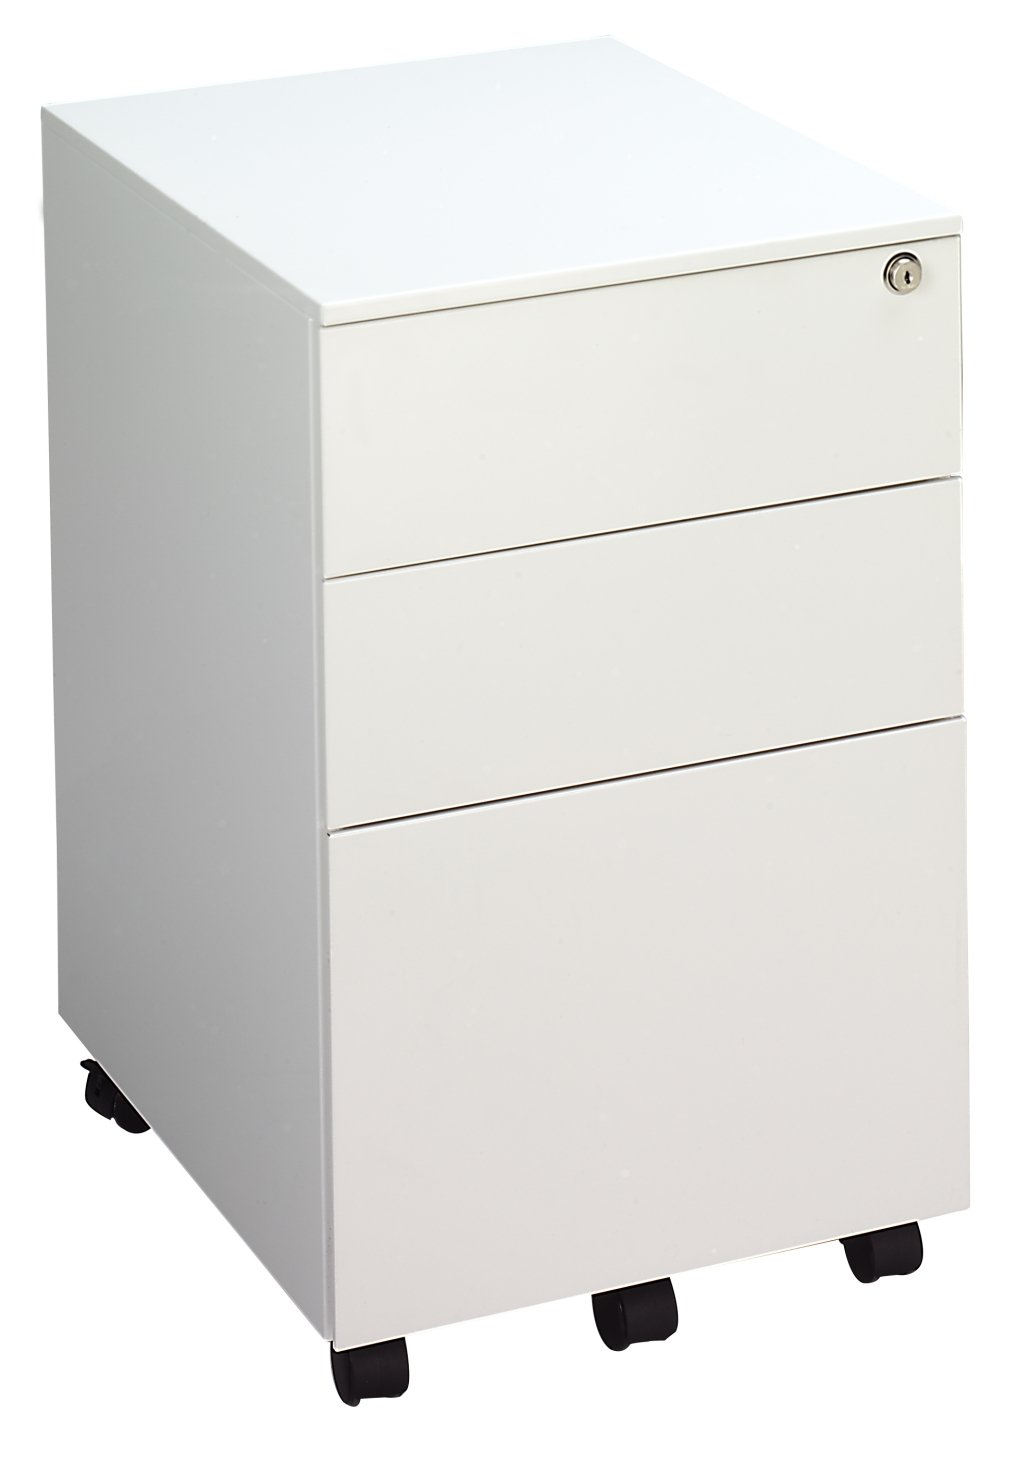 Office Hippo 3 Drawer Under Desk Mobile Filing Pedestal - Steel, White TC Group TKUSMP3WH